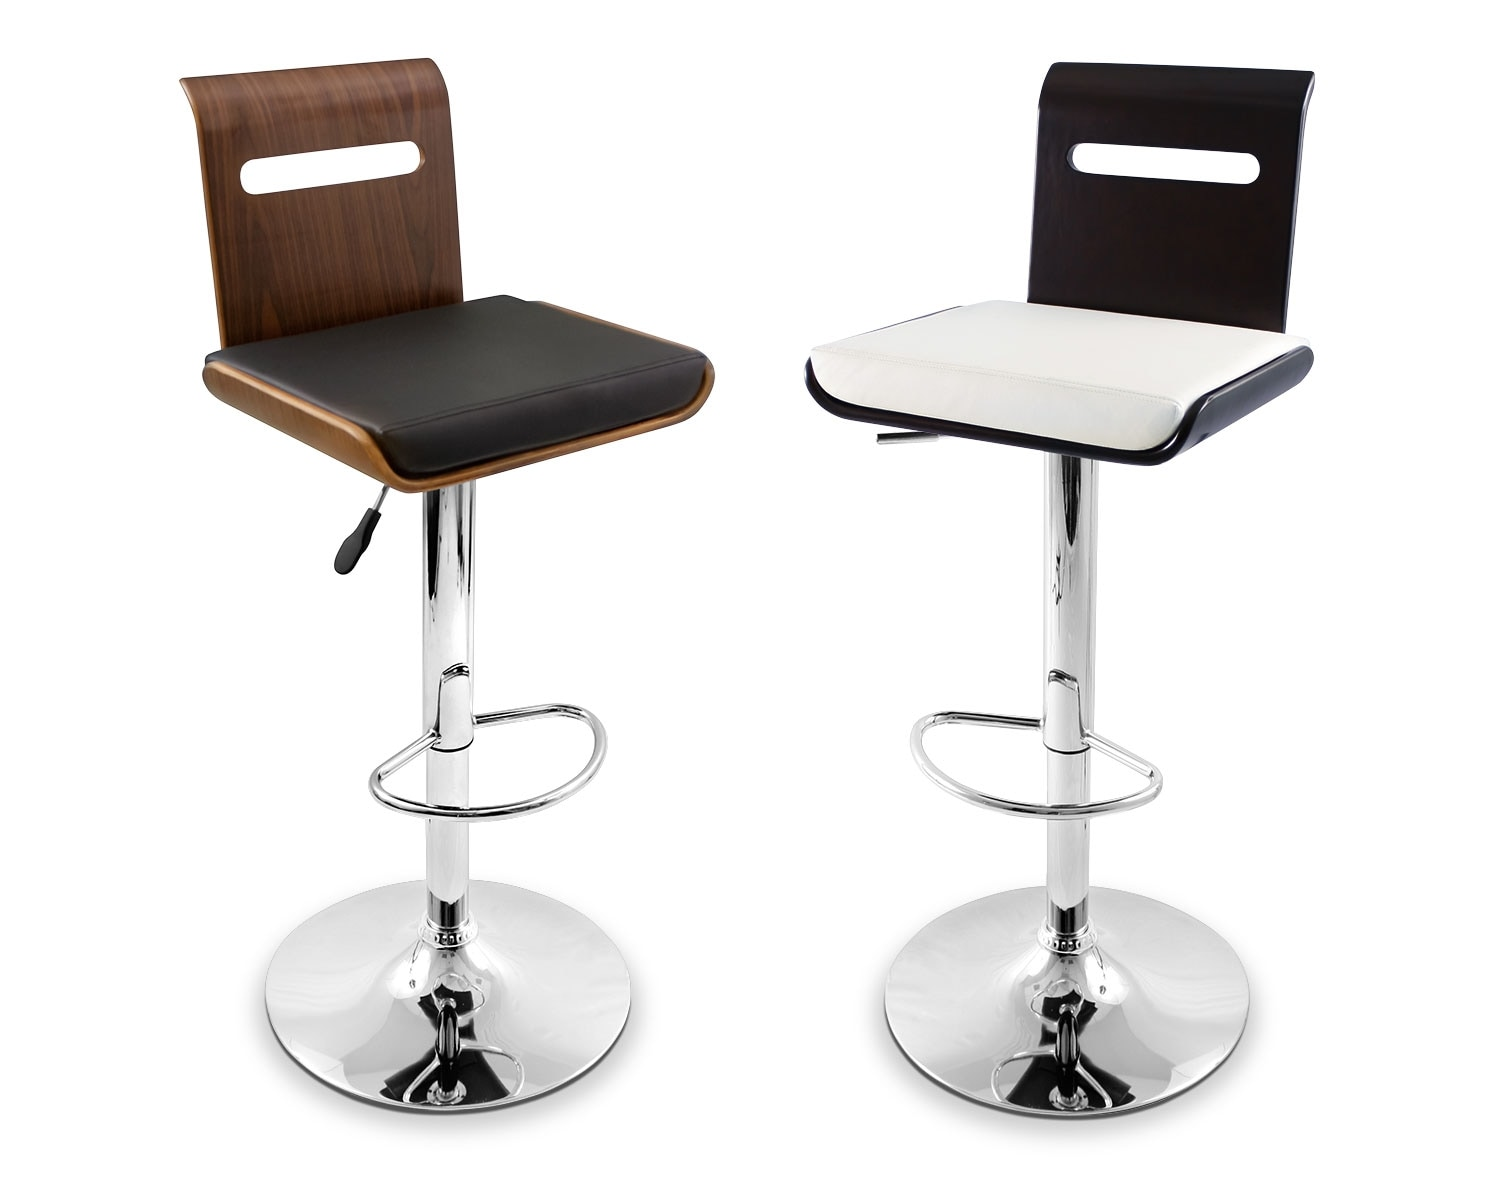 The Domato Adjustable Barstool Collection